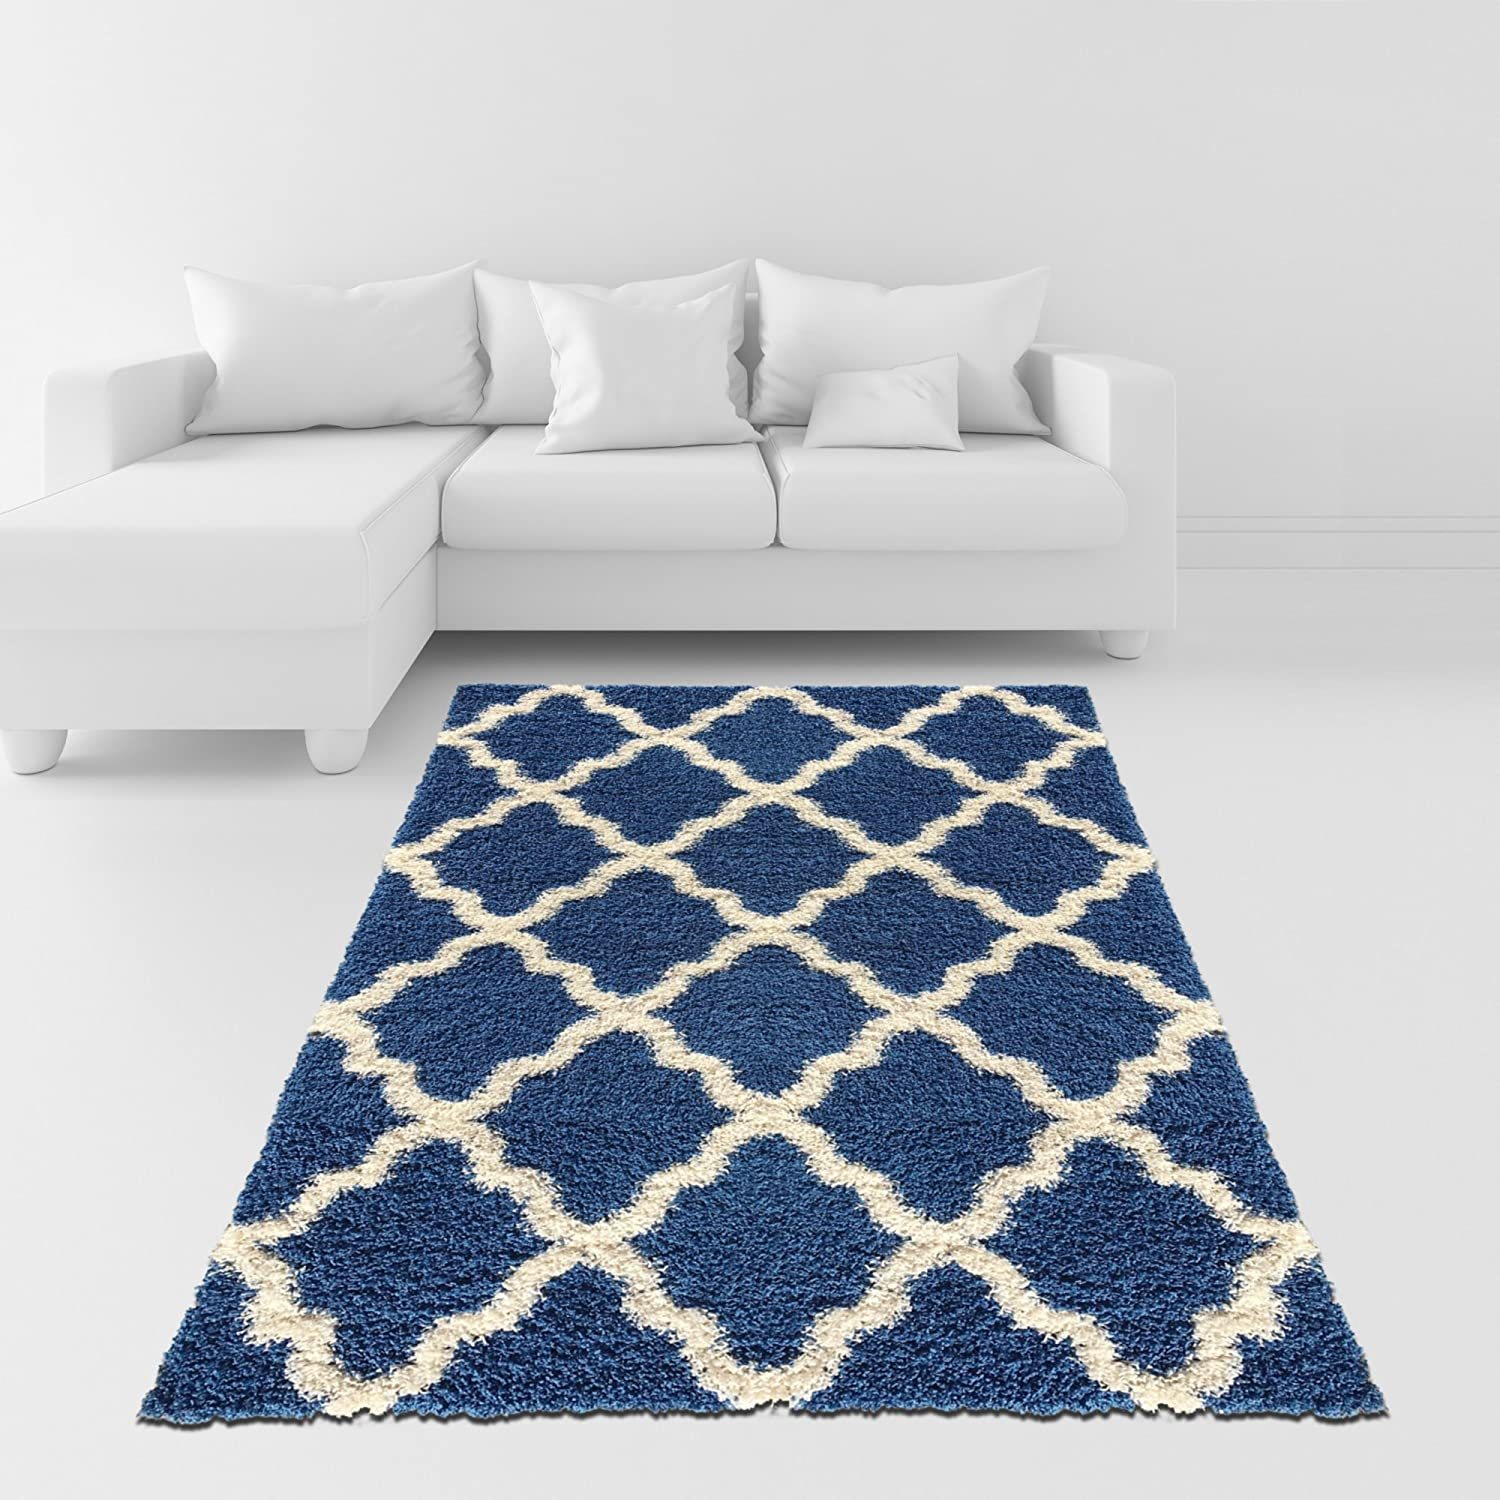 amazoncom soft shag area rug 5x7 moroccan trellis blue ivory shaggy rug area rugs for living room bedroom kitchen decorative modern shaggy - Grey Shag Rug